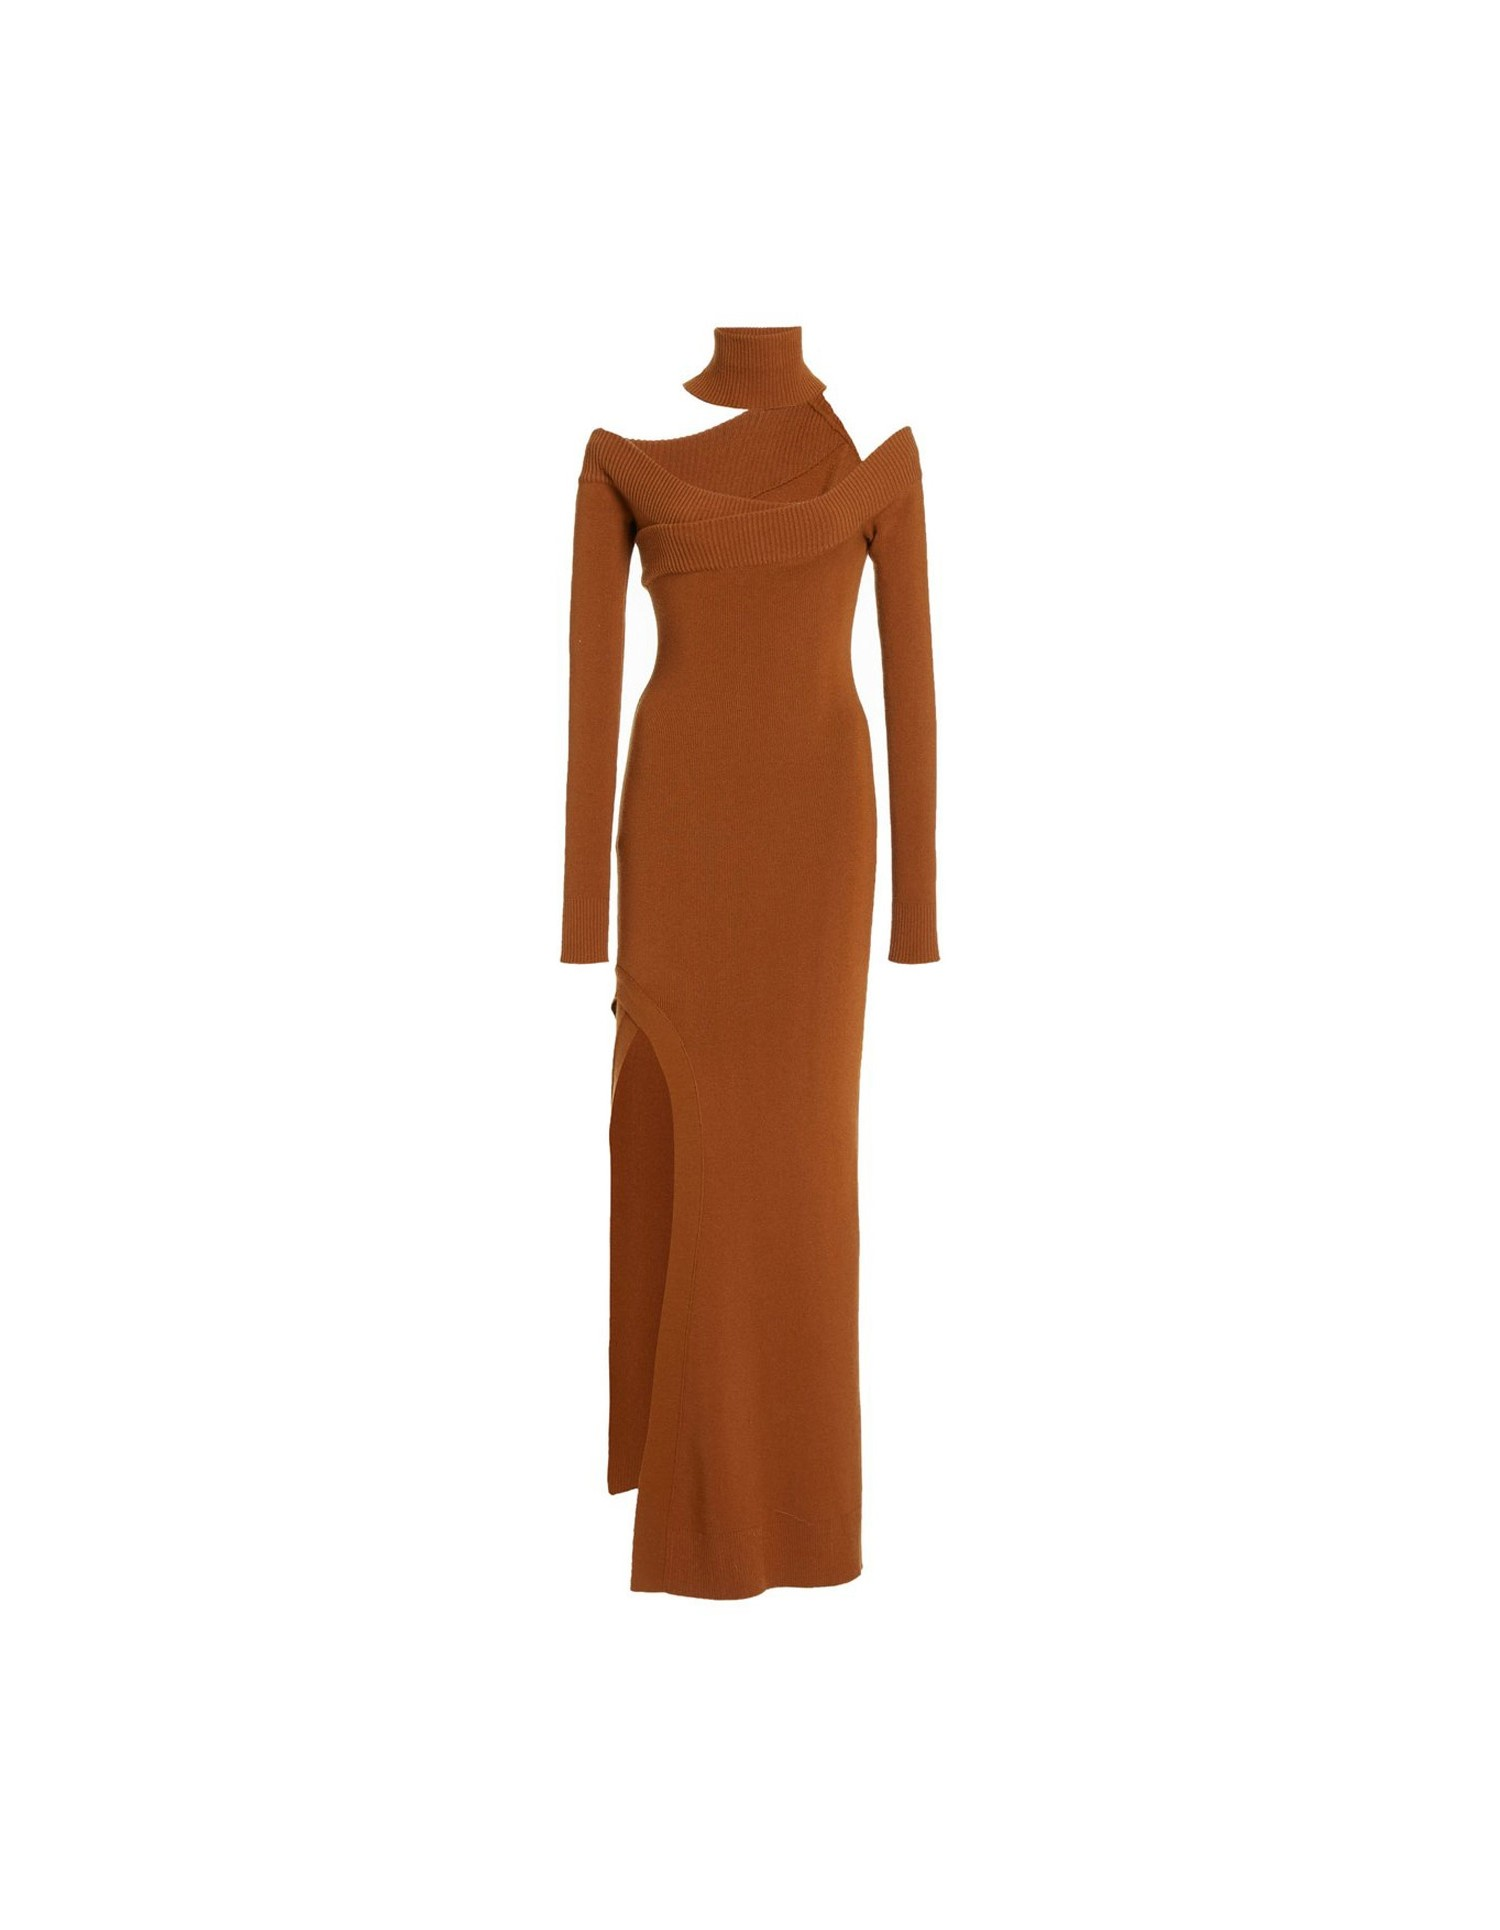 MONSE Off the Shoulder Turtleneck Arch Dress in Tan on Model Full Front View